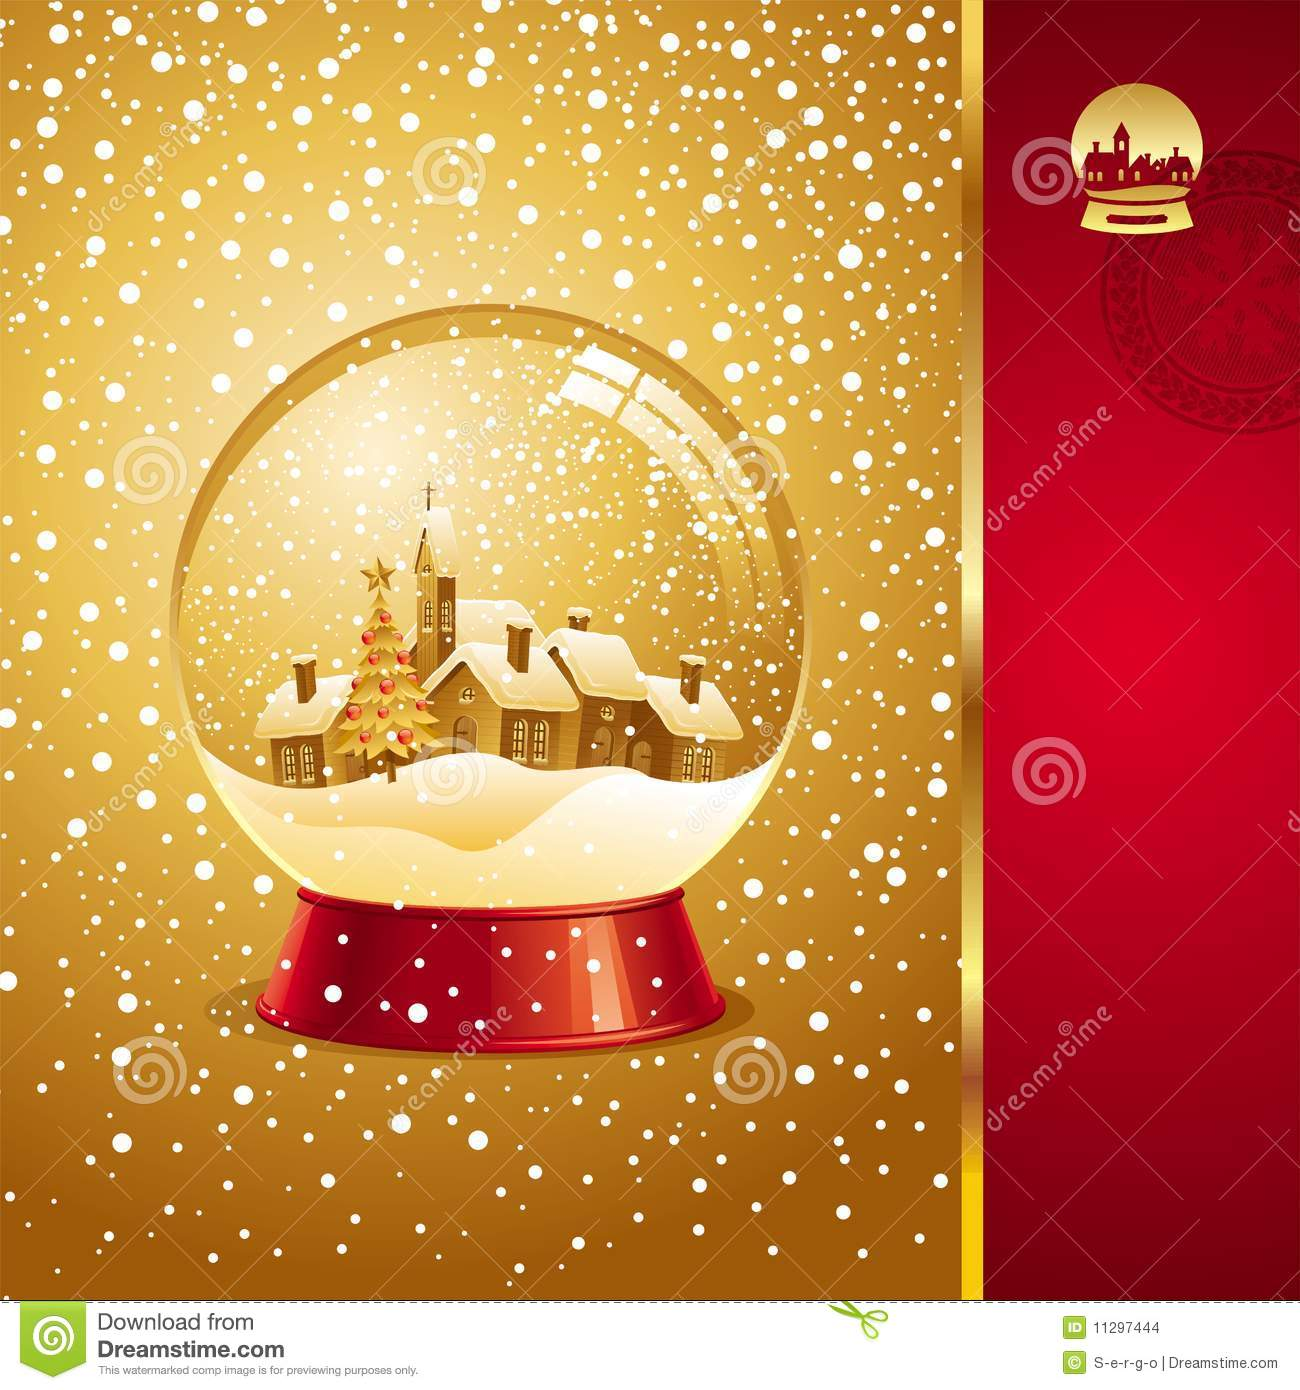 Christmas Card With Snow Globe Stock Vector Image 11297444